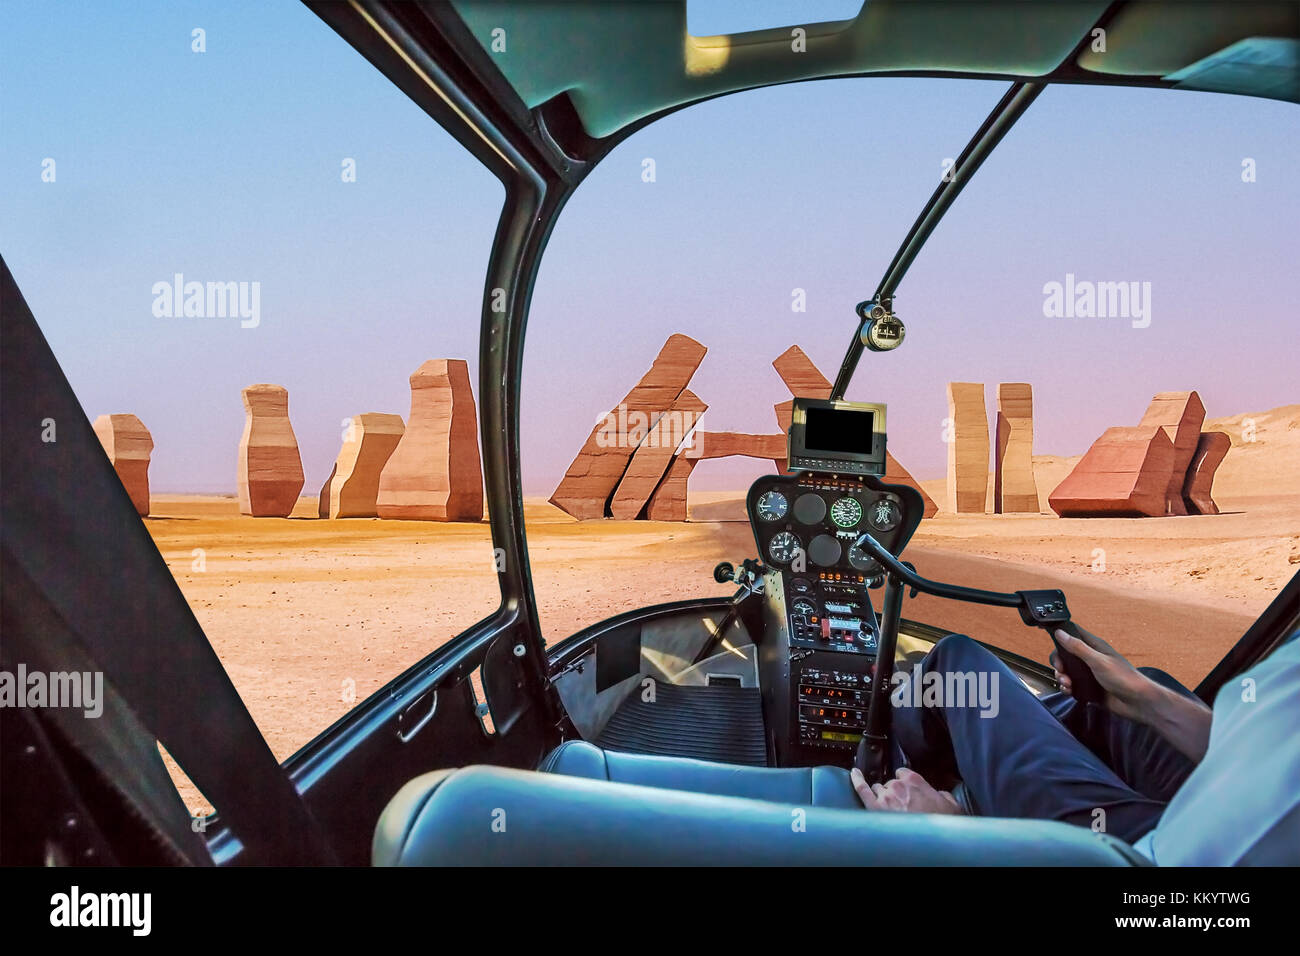 Ras Mohammed Helicopter - Stock Image